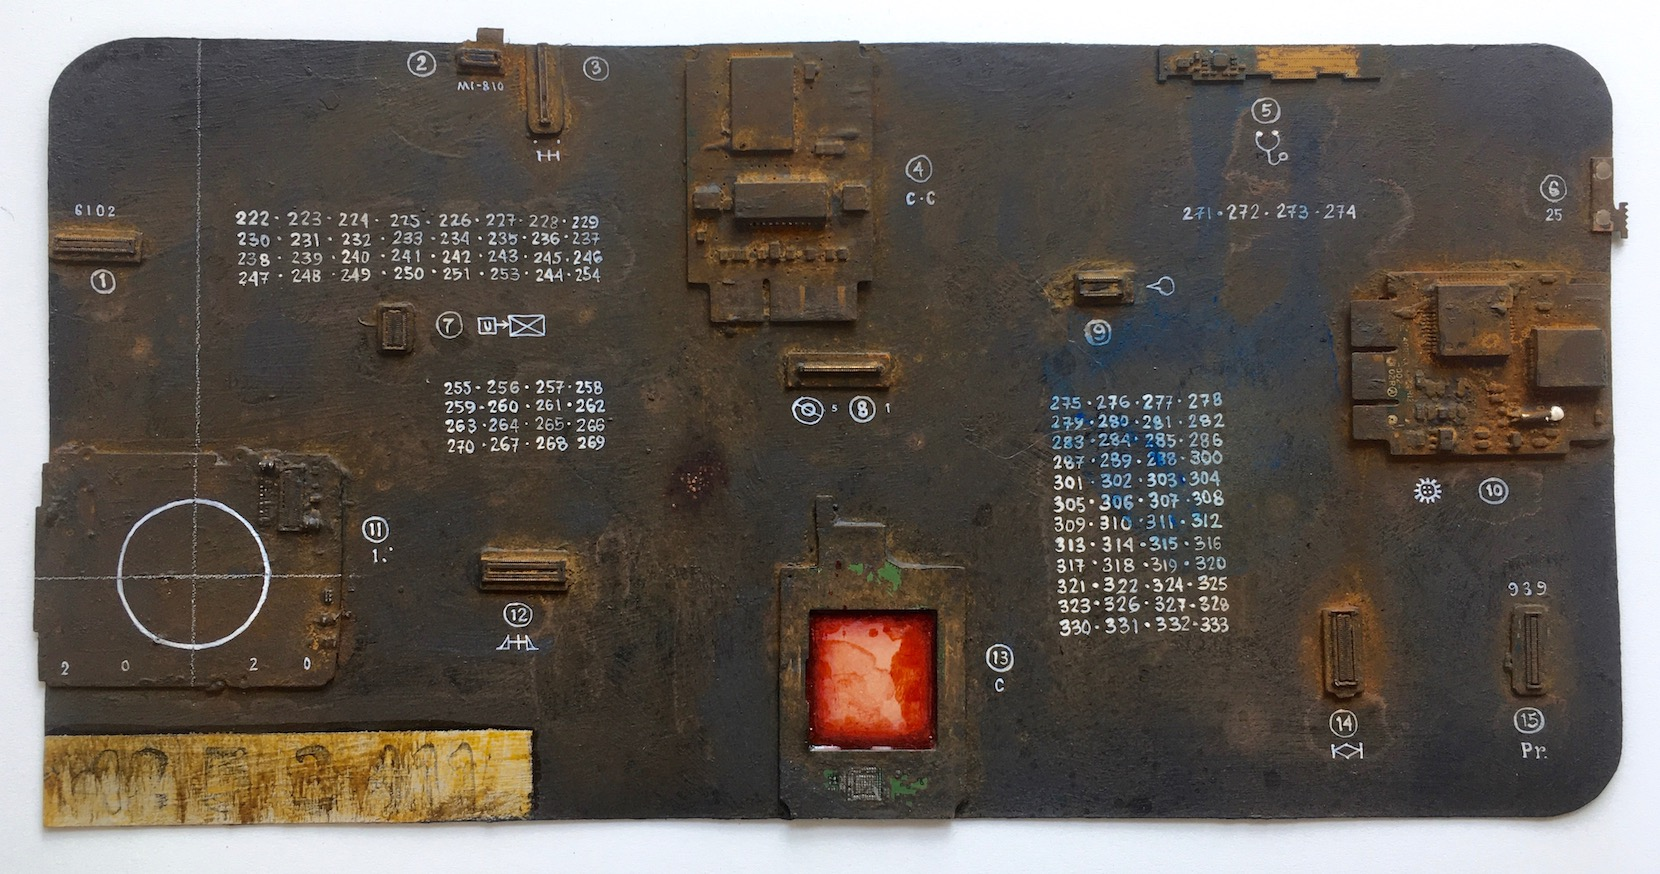 Renée Stout, Mnemonic Device (Memory Board), 2020, Acrylic paint, rust patination and found circuitry on paper, 6 ¼ x 12 inches, Photo by artist